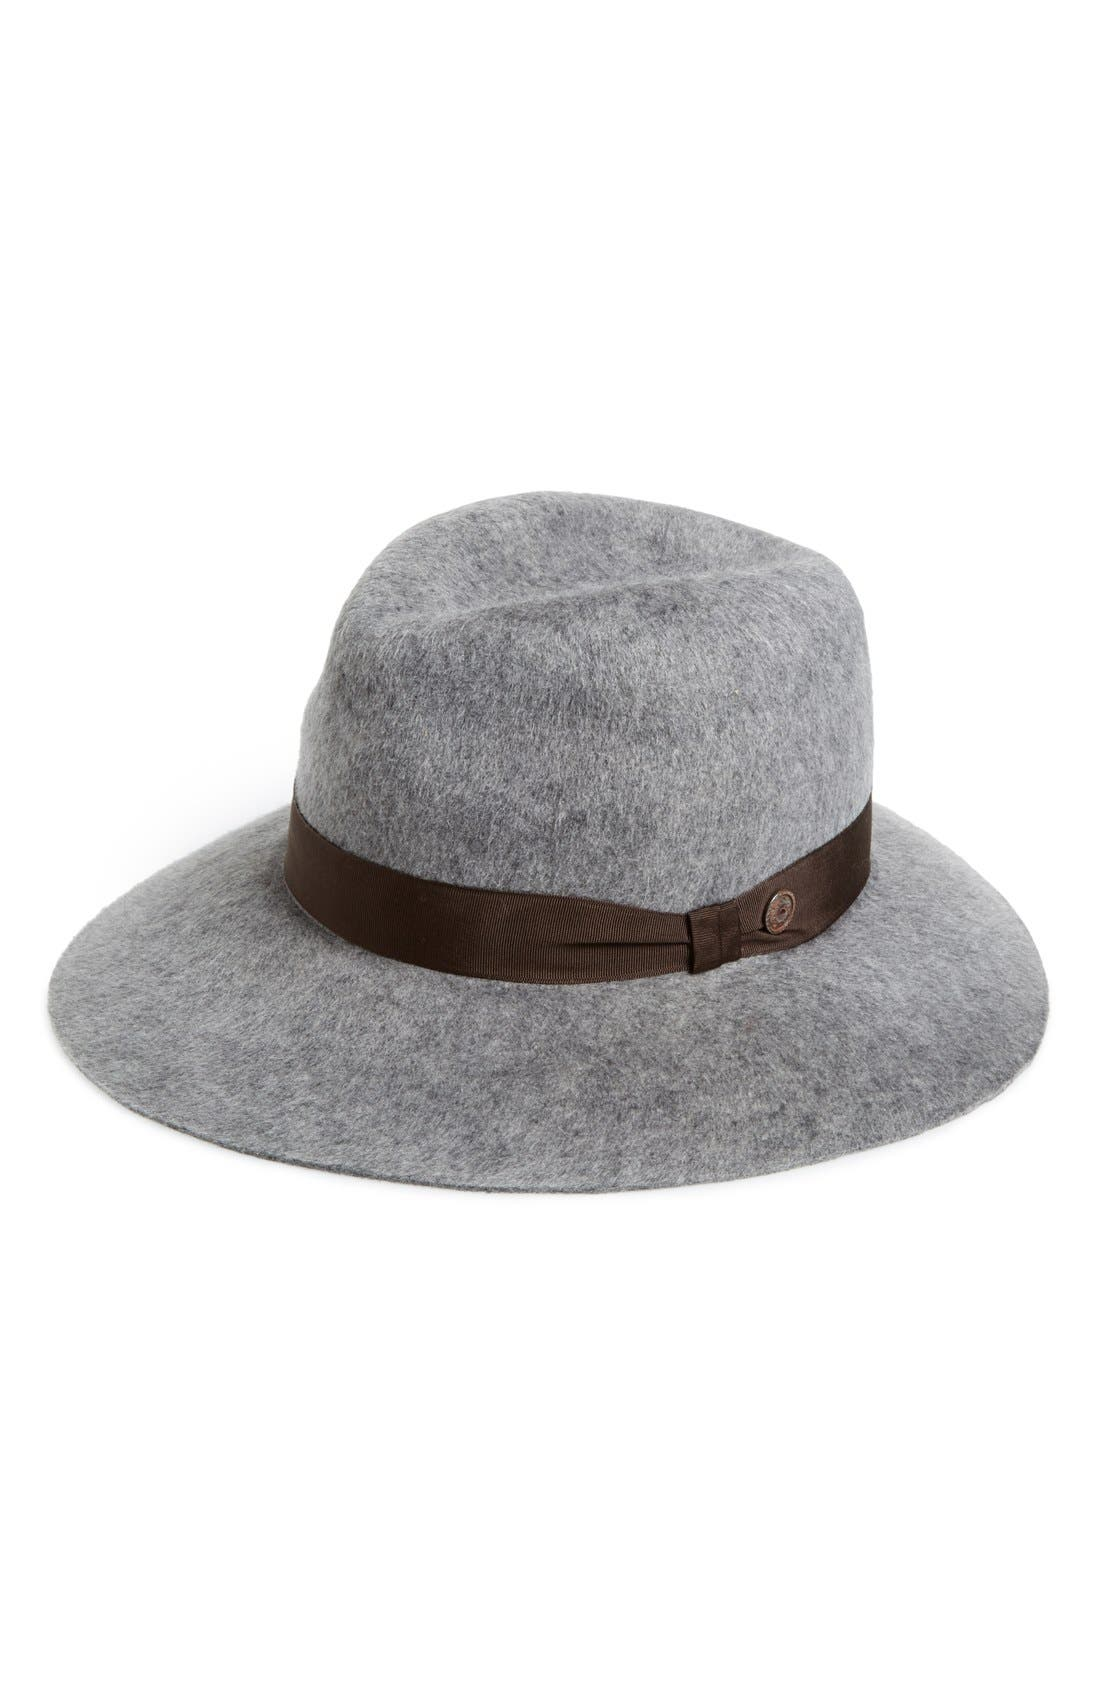 Alternate Image 1 Selected - Grace Hats 'Shag' Wide Brim Wool Hat